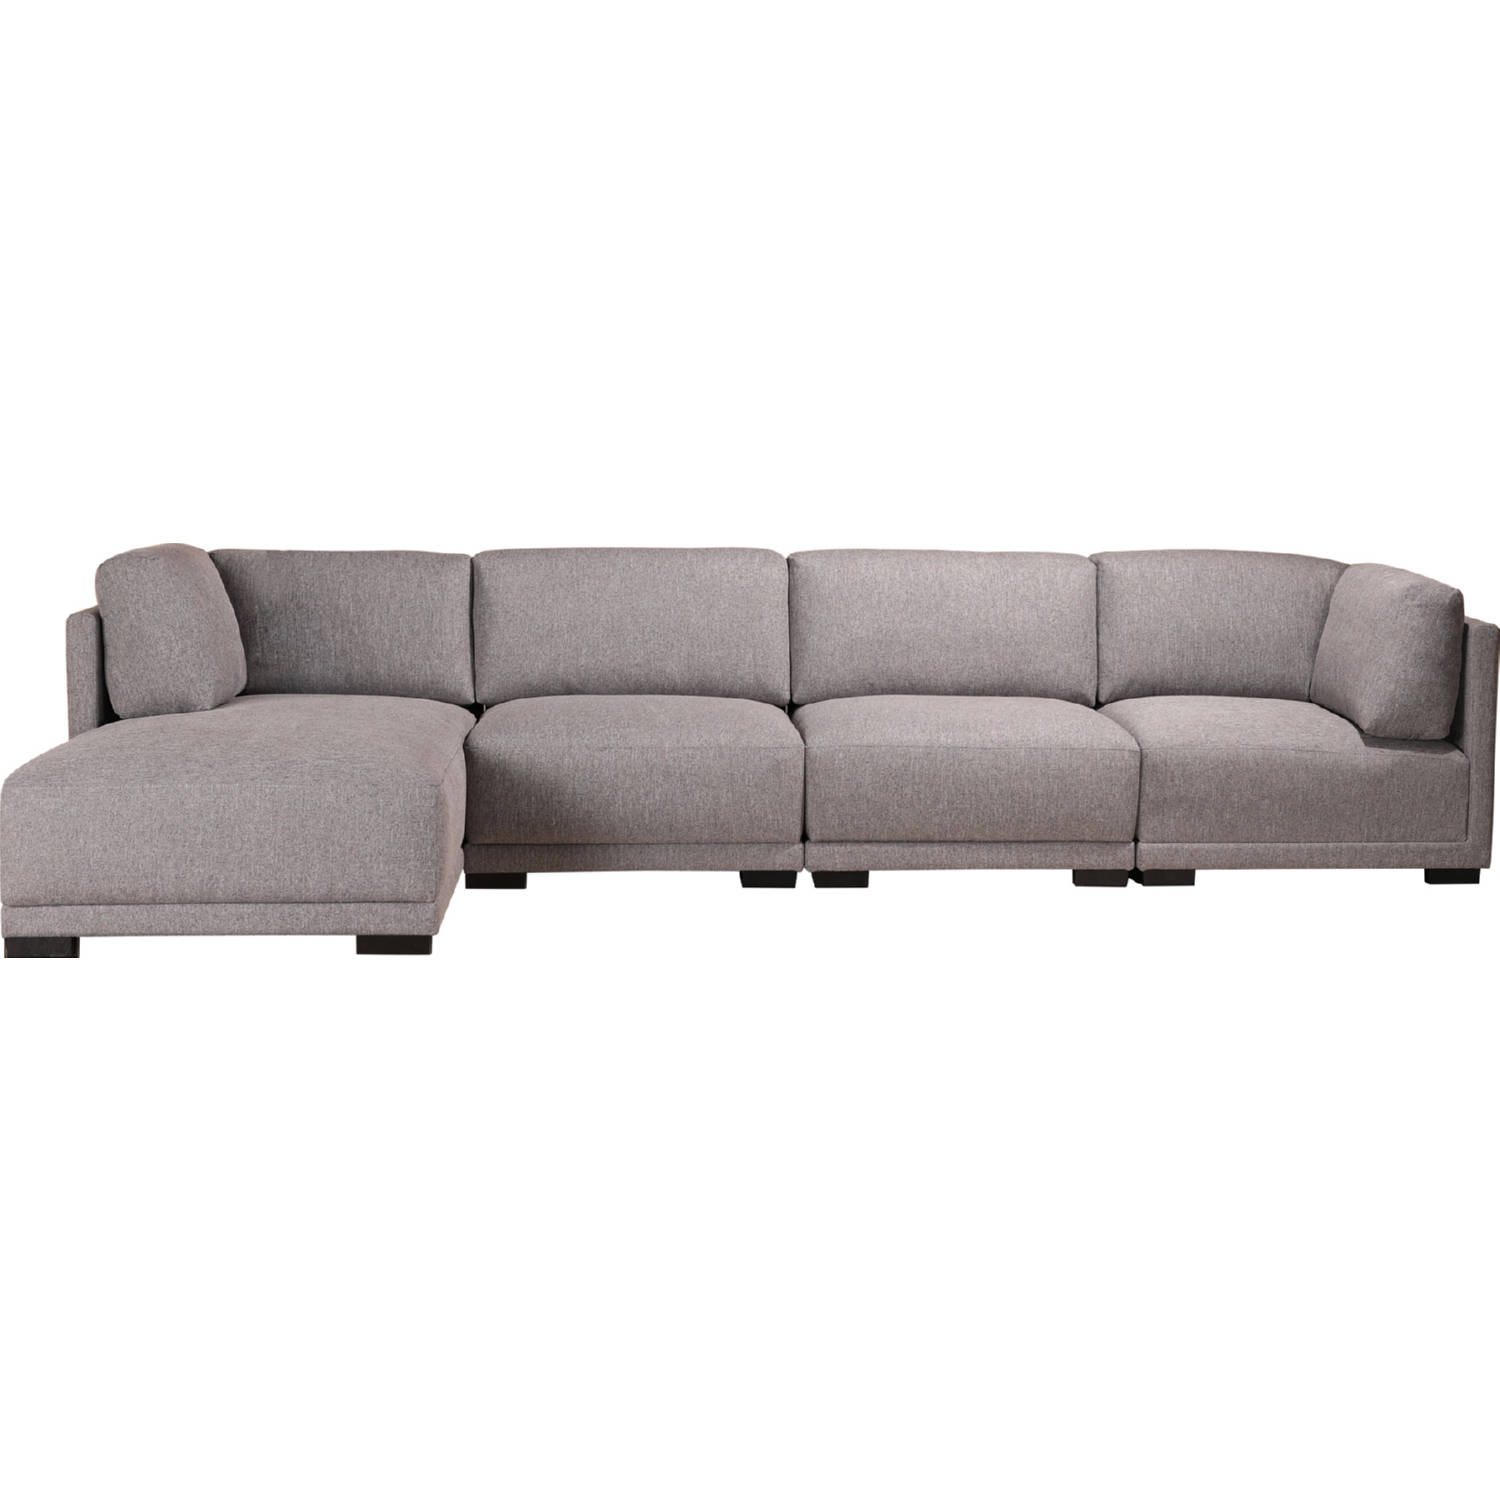 Fantastic Romeo Modular Sectional Sofa W Left Chaise In Grey Fabric By Moes Home Collection Theyellowbook Wood Chair Design Ideas Theyellowbookinfo